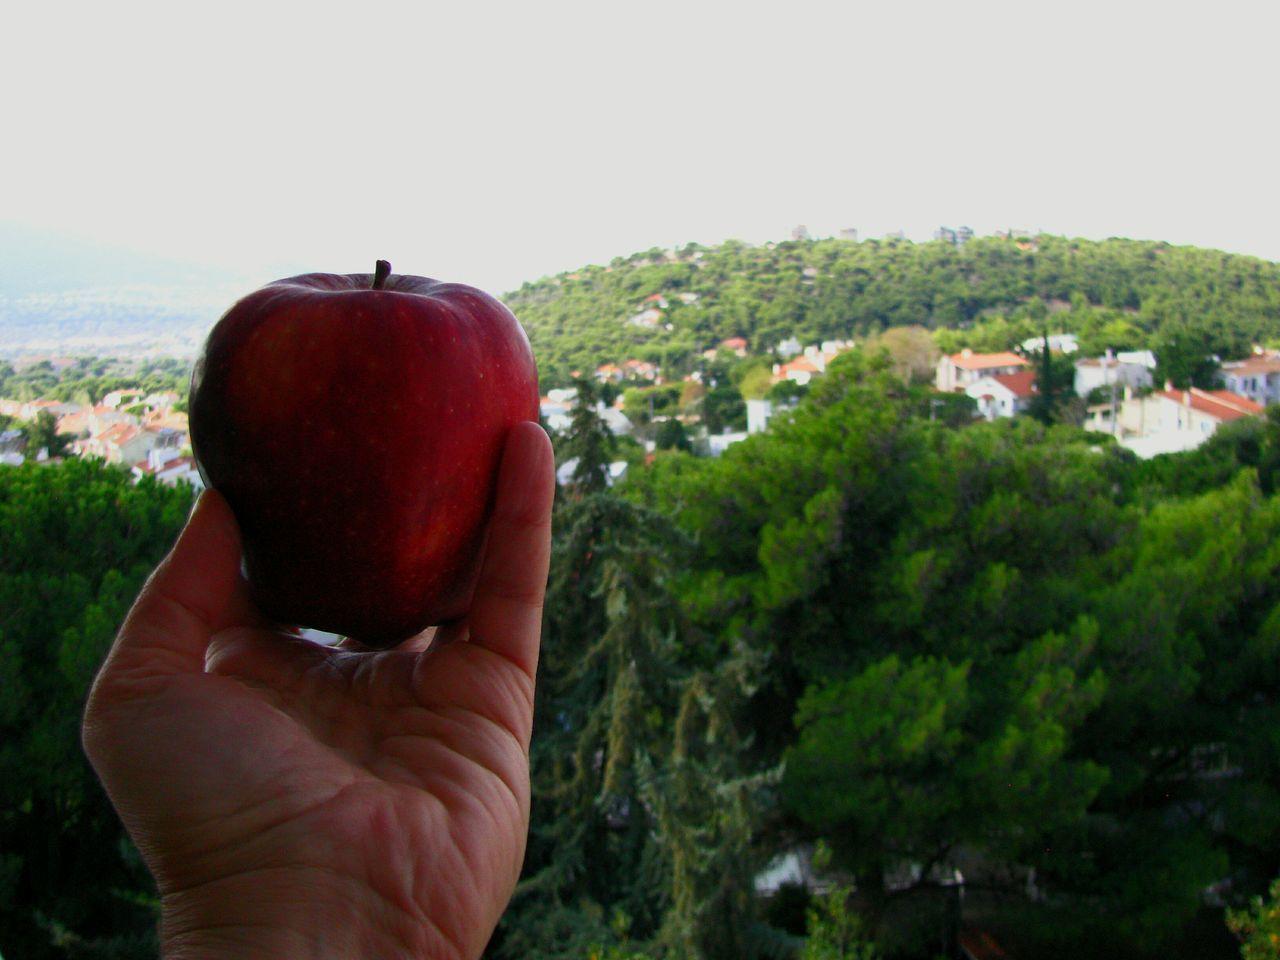 ShareTheMeal Apple Hand Holding Fruit Fruit Photography Fruits And Vegetables Food Food Photography My World Of Food Apples Red Apple Diet Food Ready-to-eat Healthy Eating Trees Landscapes Landscape Urban Landscape Architecture Flying High Art Is Everywhere EyeEm Diversity Cut And Paste Visual Feast